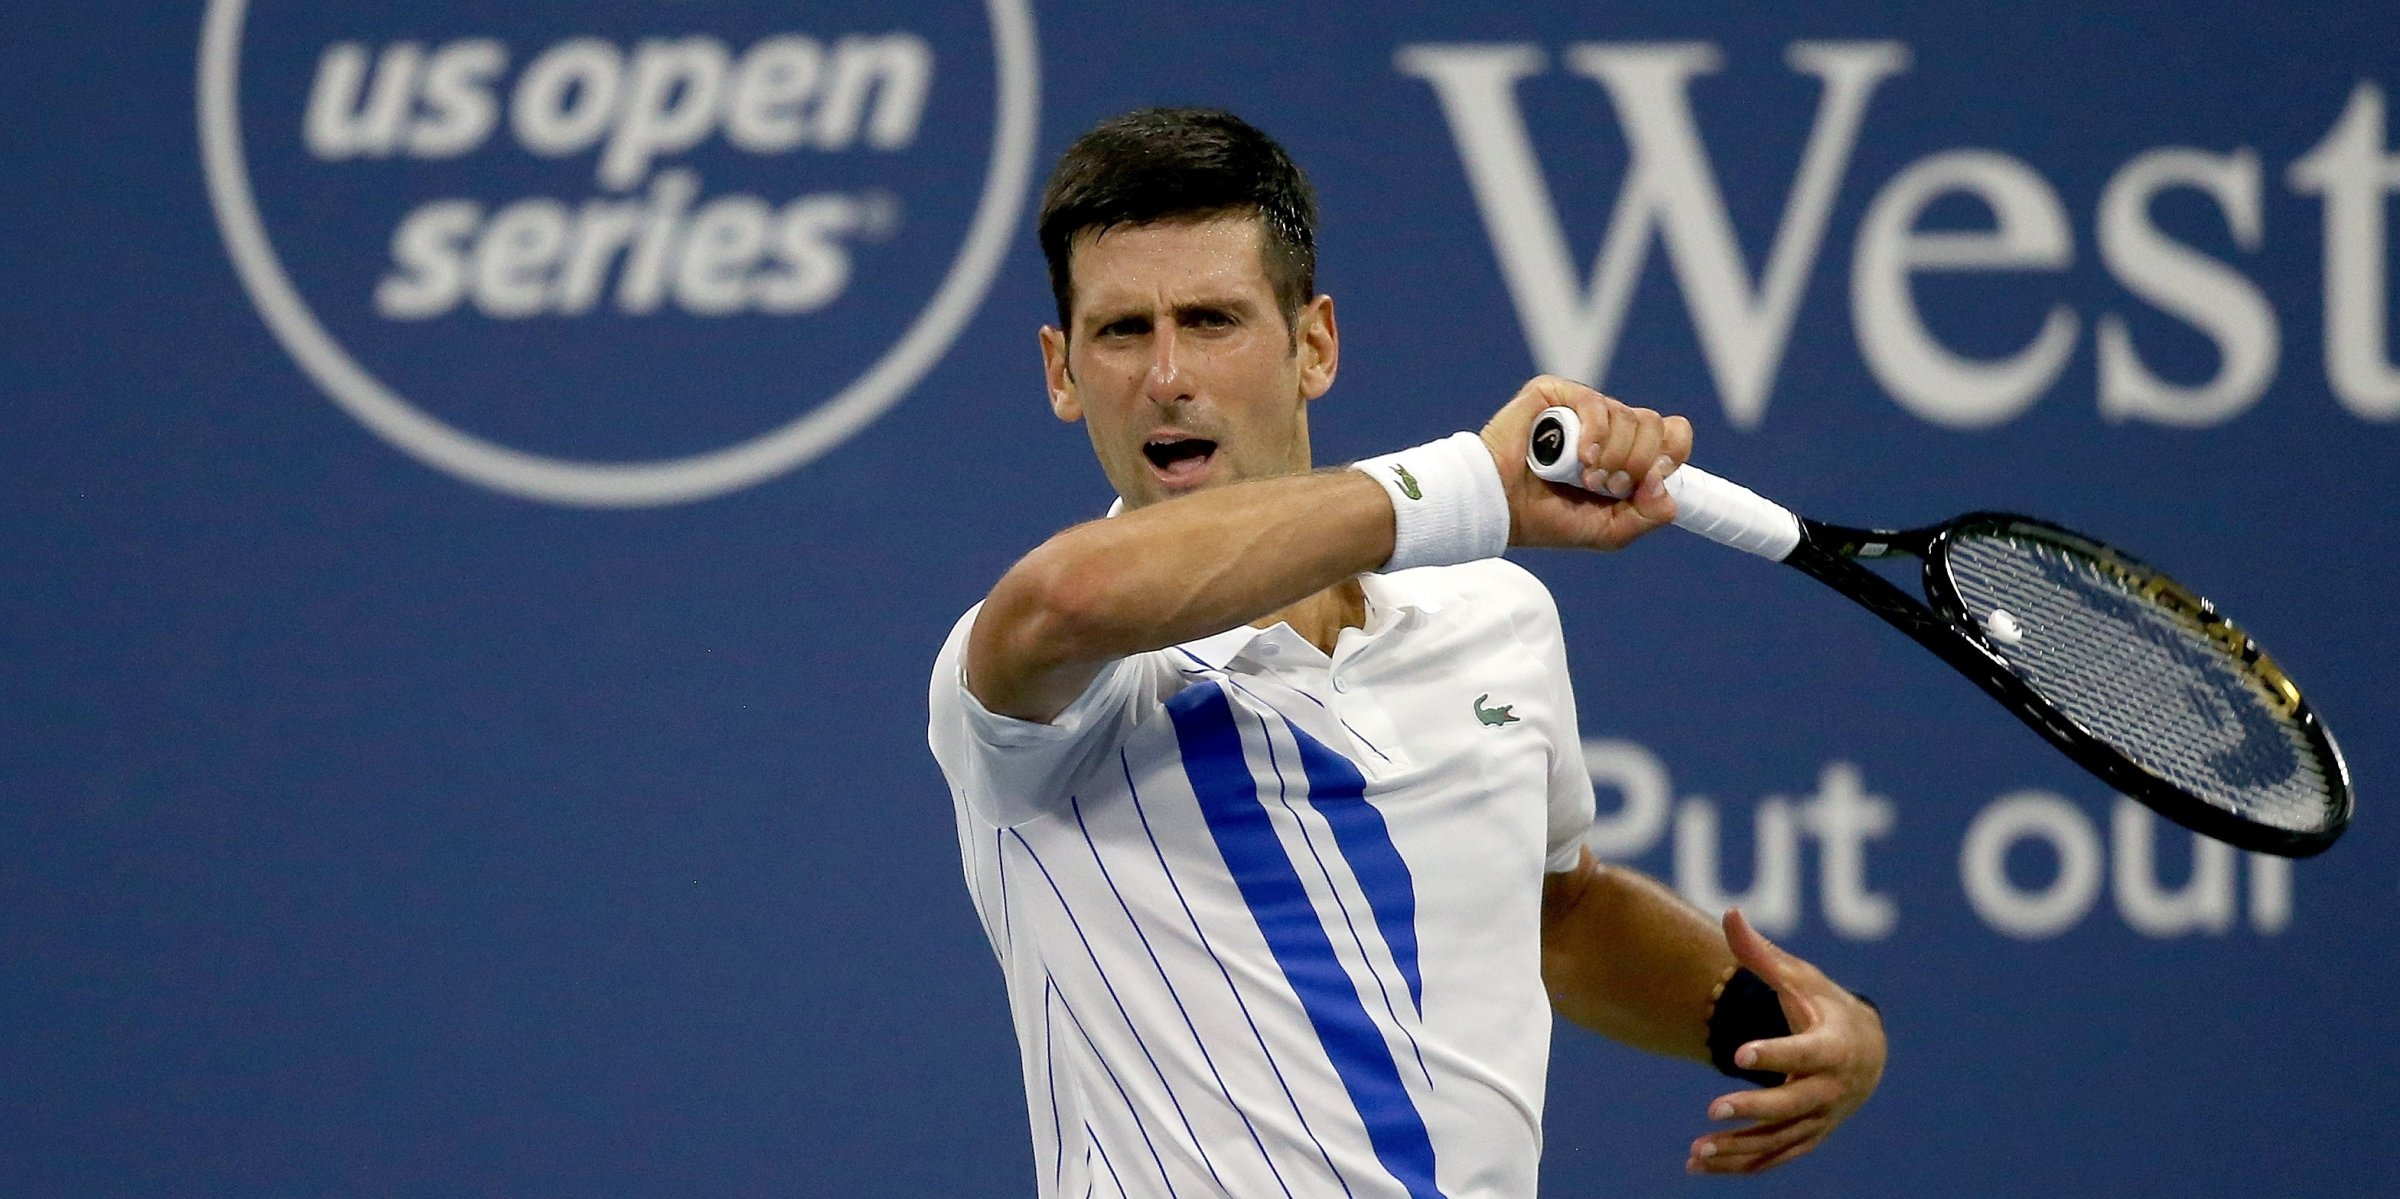 Injured Djokovic Advances Murray Makes Comeback At Us Open Primer Daily Sabah